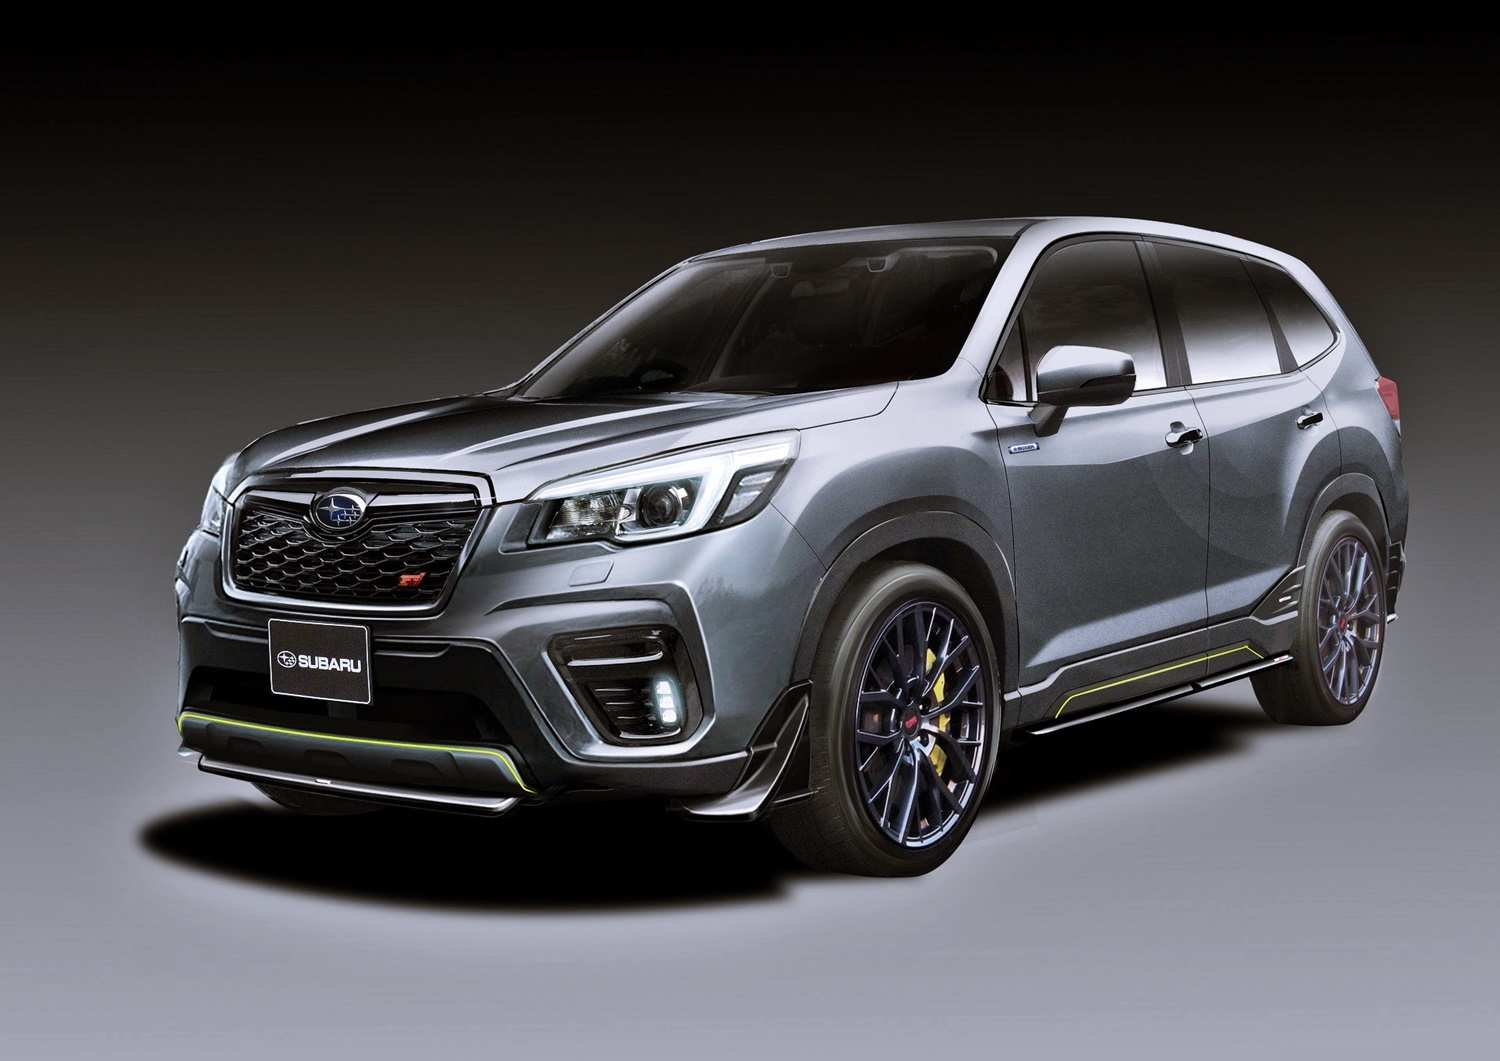 80 New Subaru Forester 2020 Review New Review